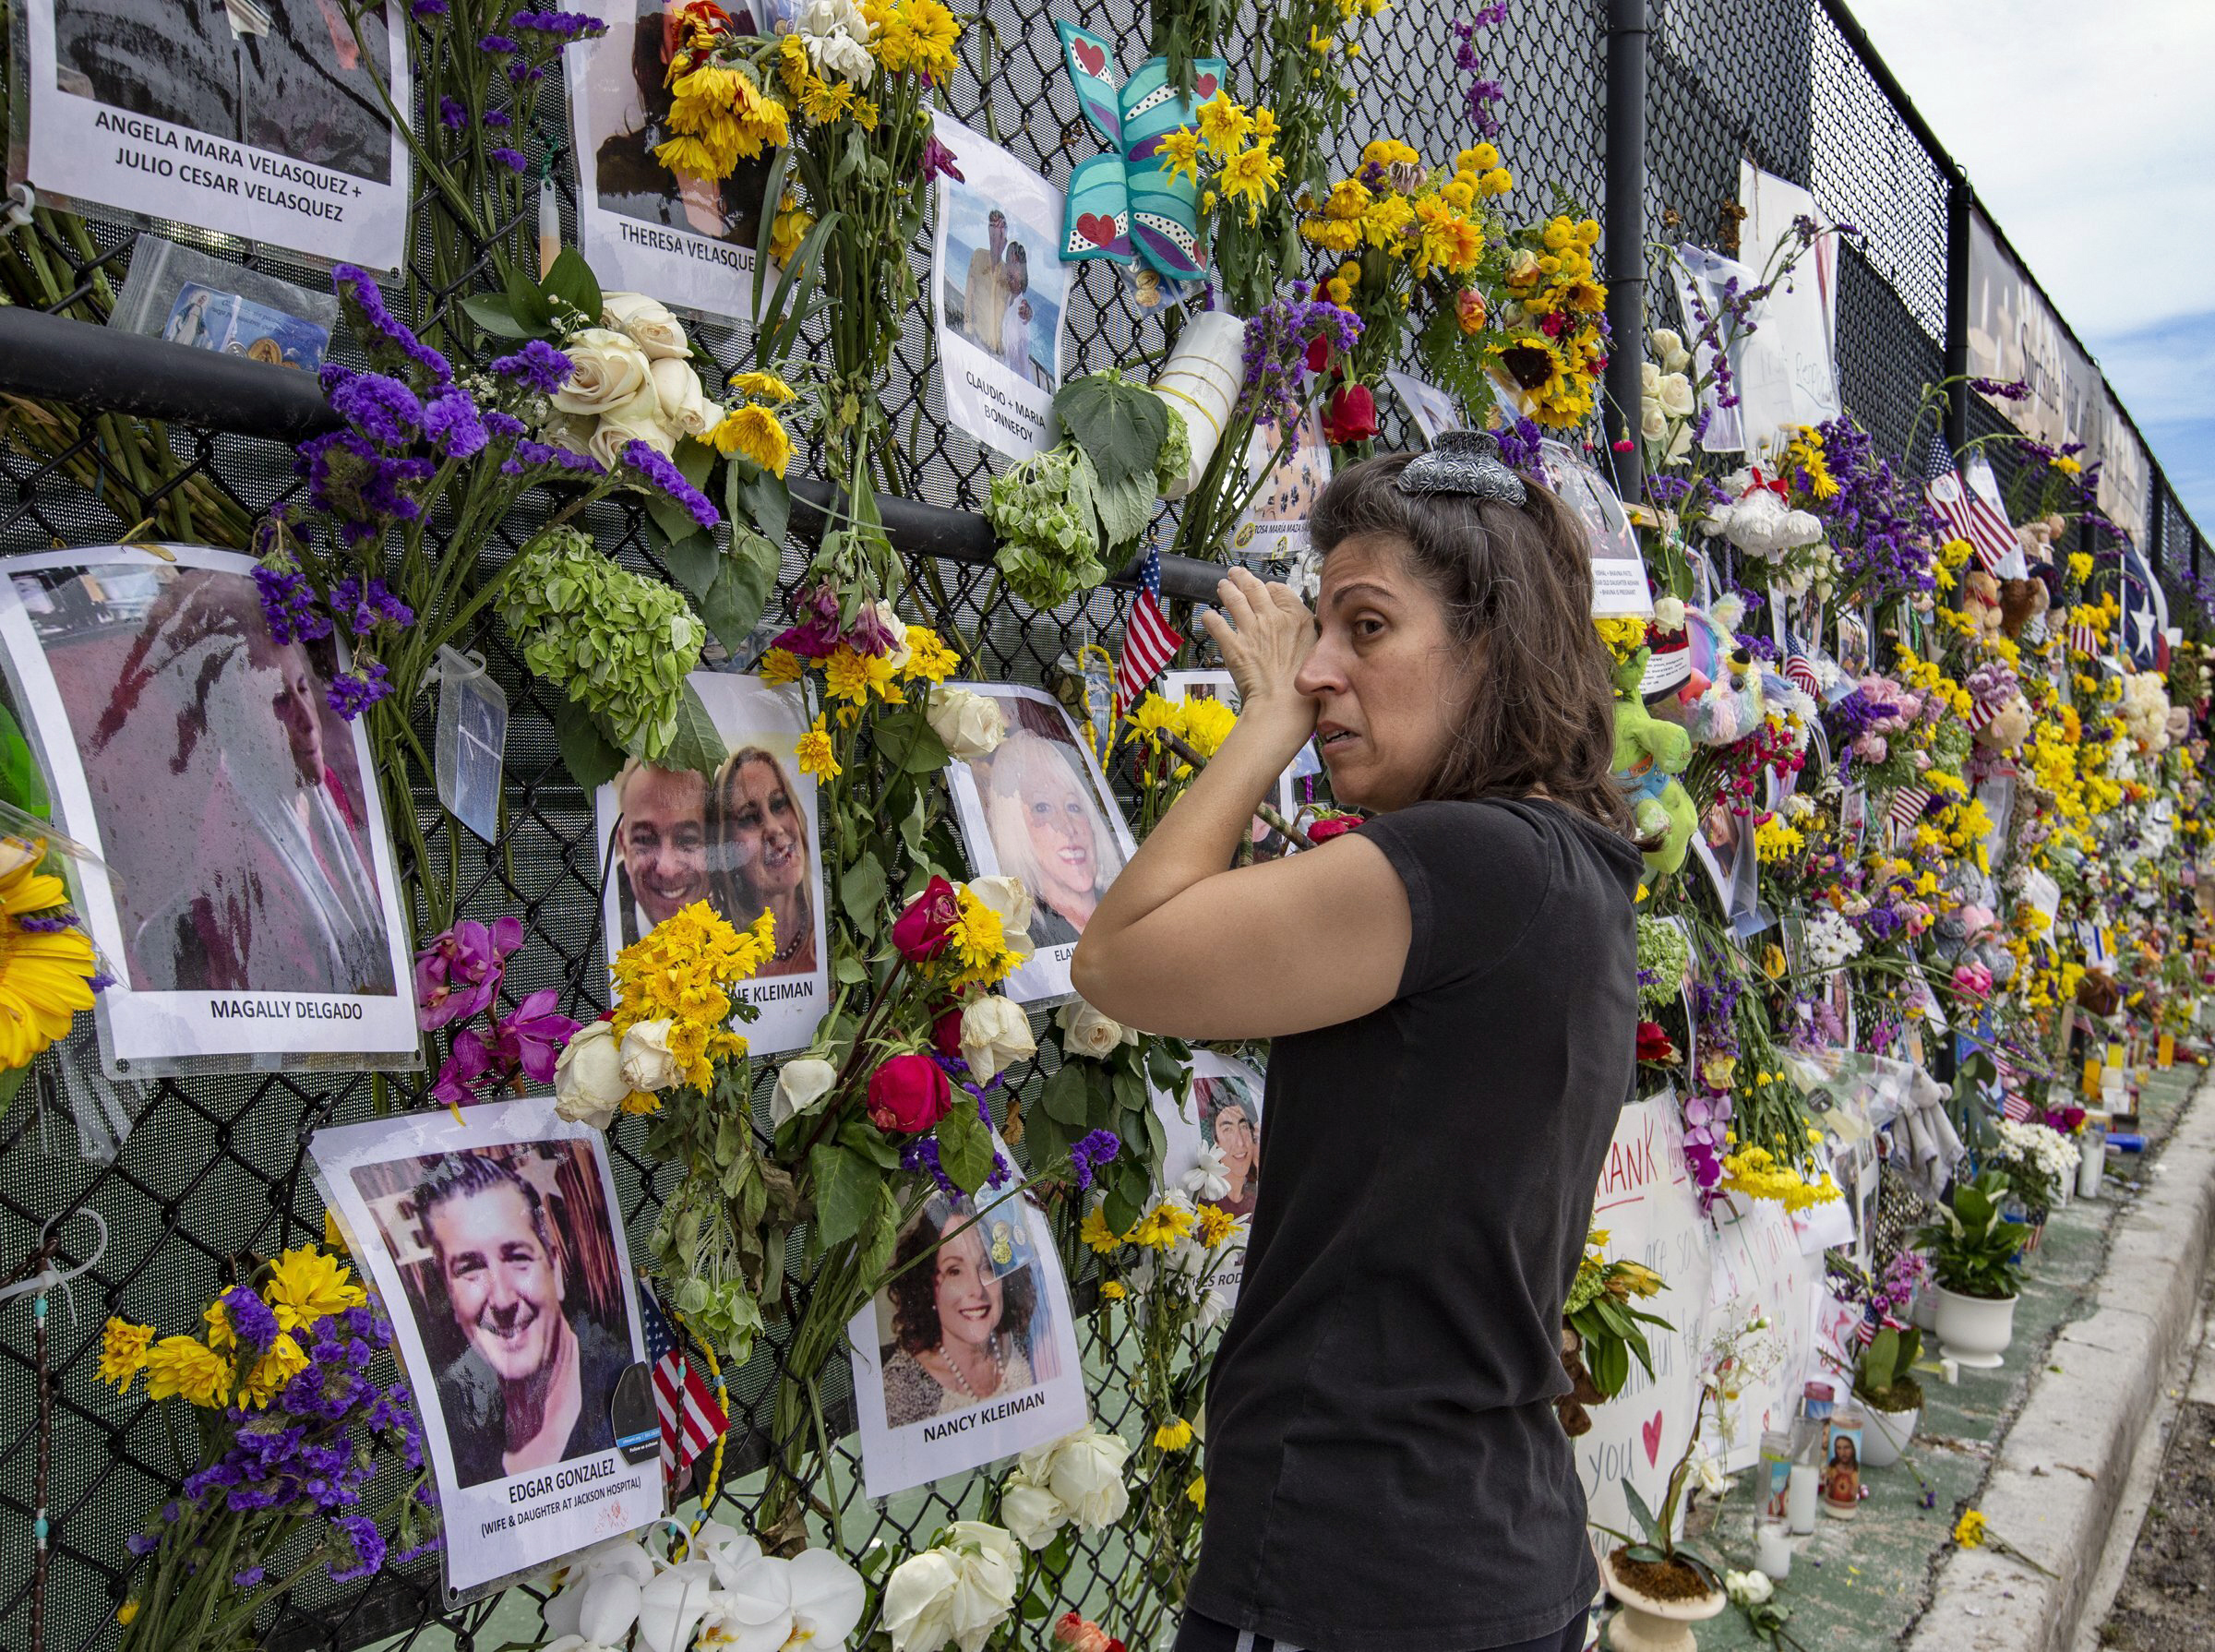 Gini Gonte visits the Surfside Wall of Hope and Memorial on Wednesday, July 7, 2021, as she honors her friends Nancy Kress Levin and Jay Kleiman, who lost their lives after the collapse of the Champlain Towers South in Surfside, Fla.